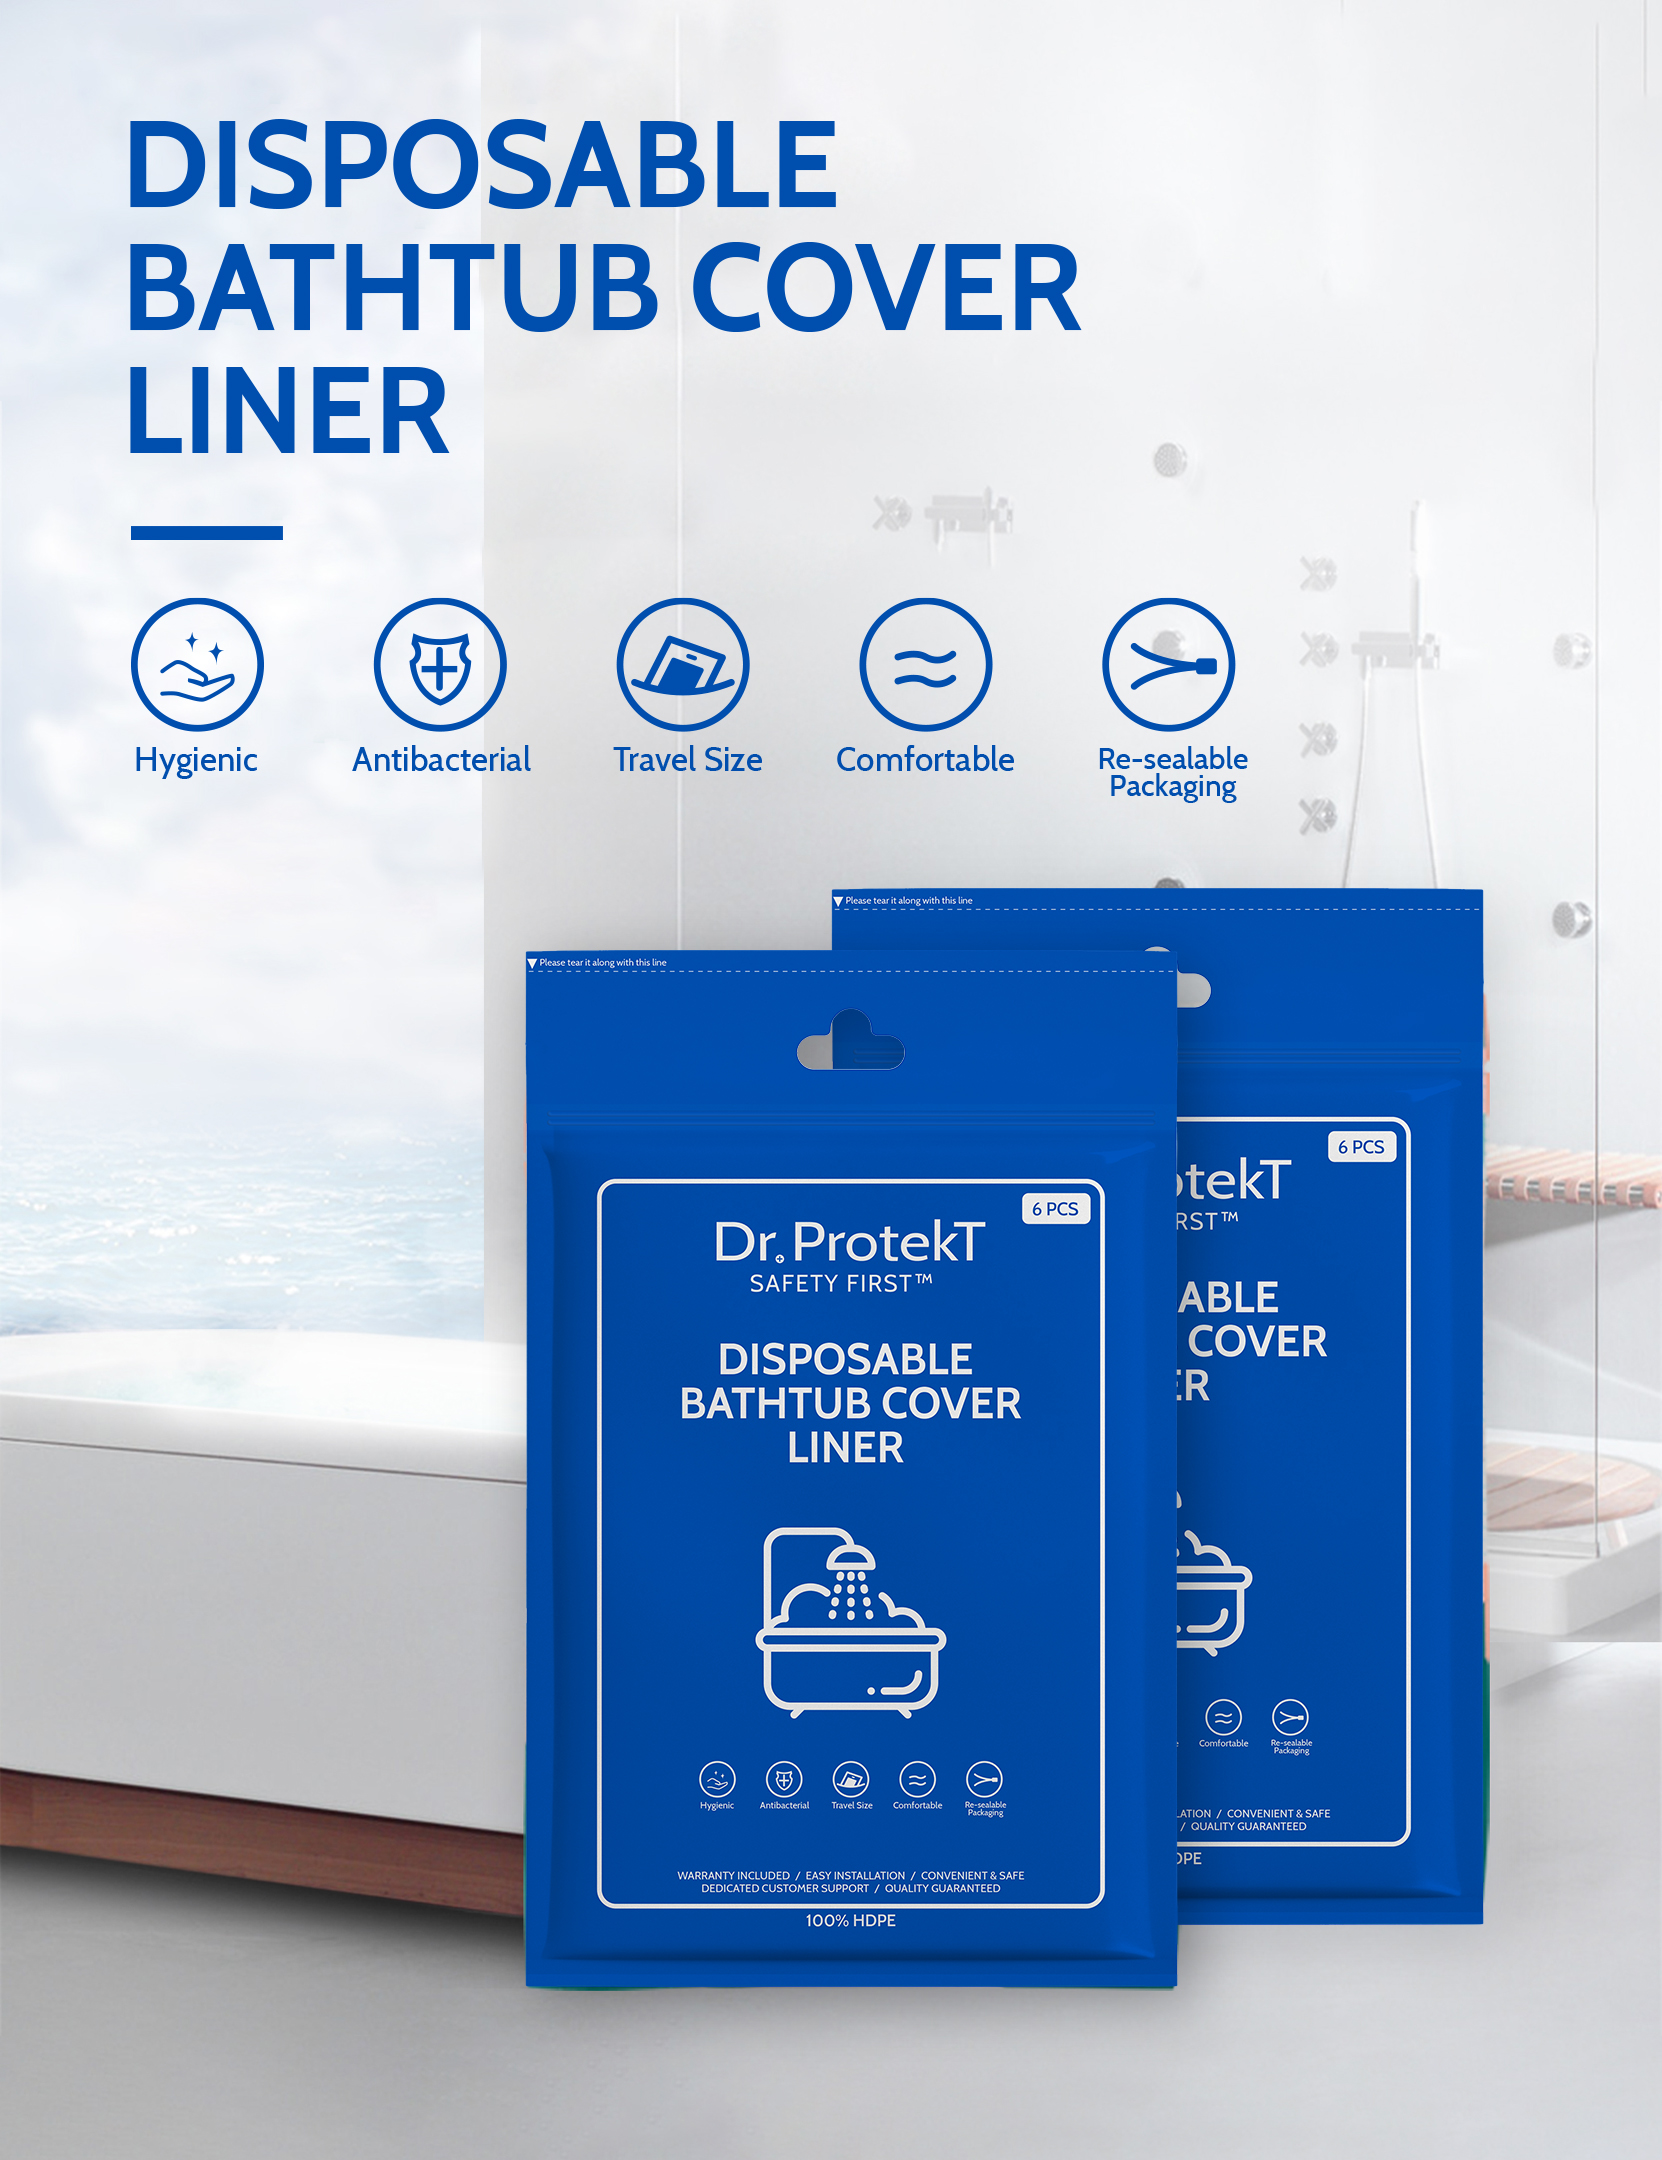 Dr. Protekt Safety First™ Disposable Bathtub Cover